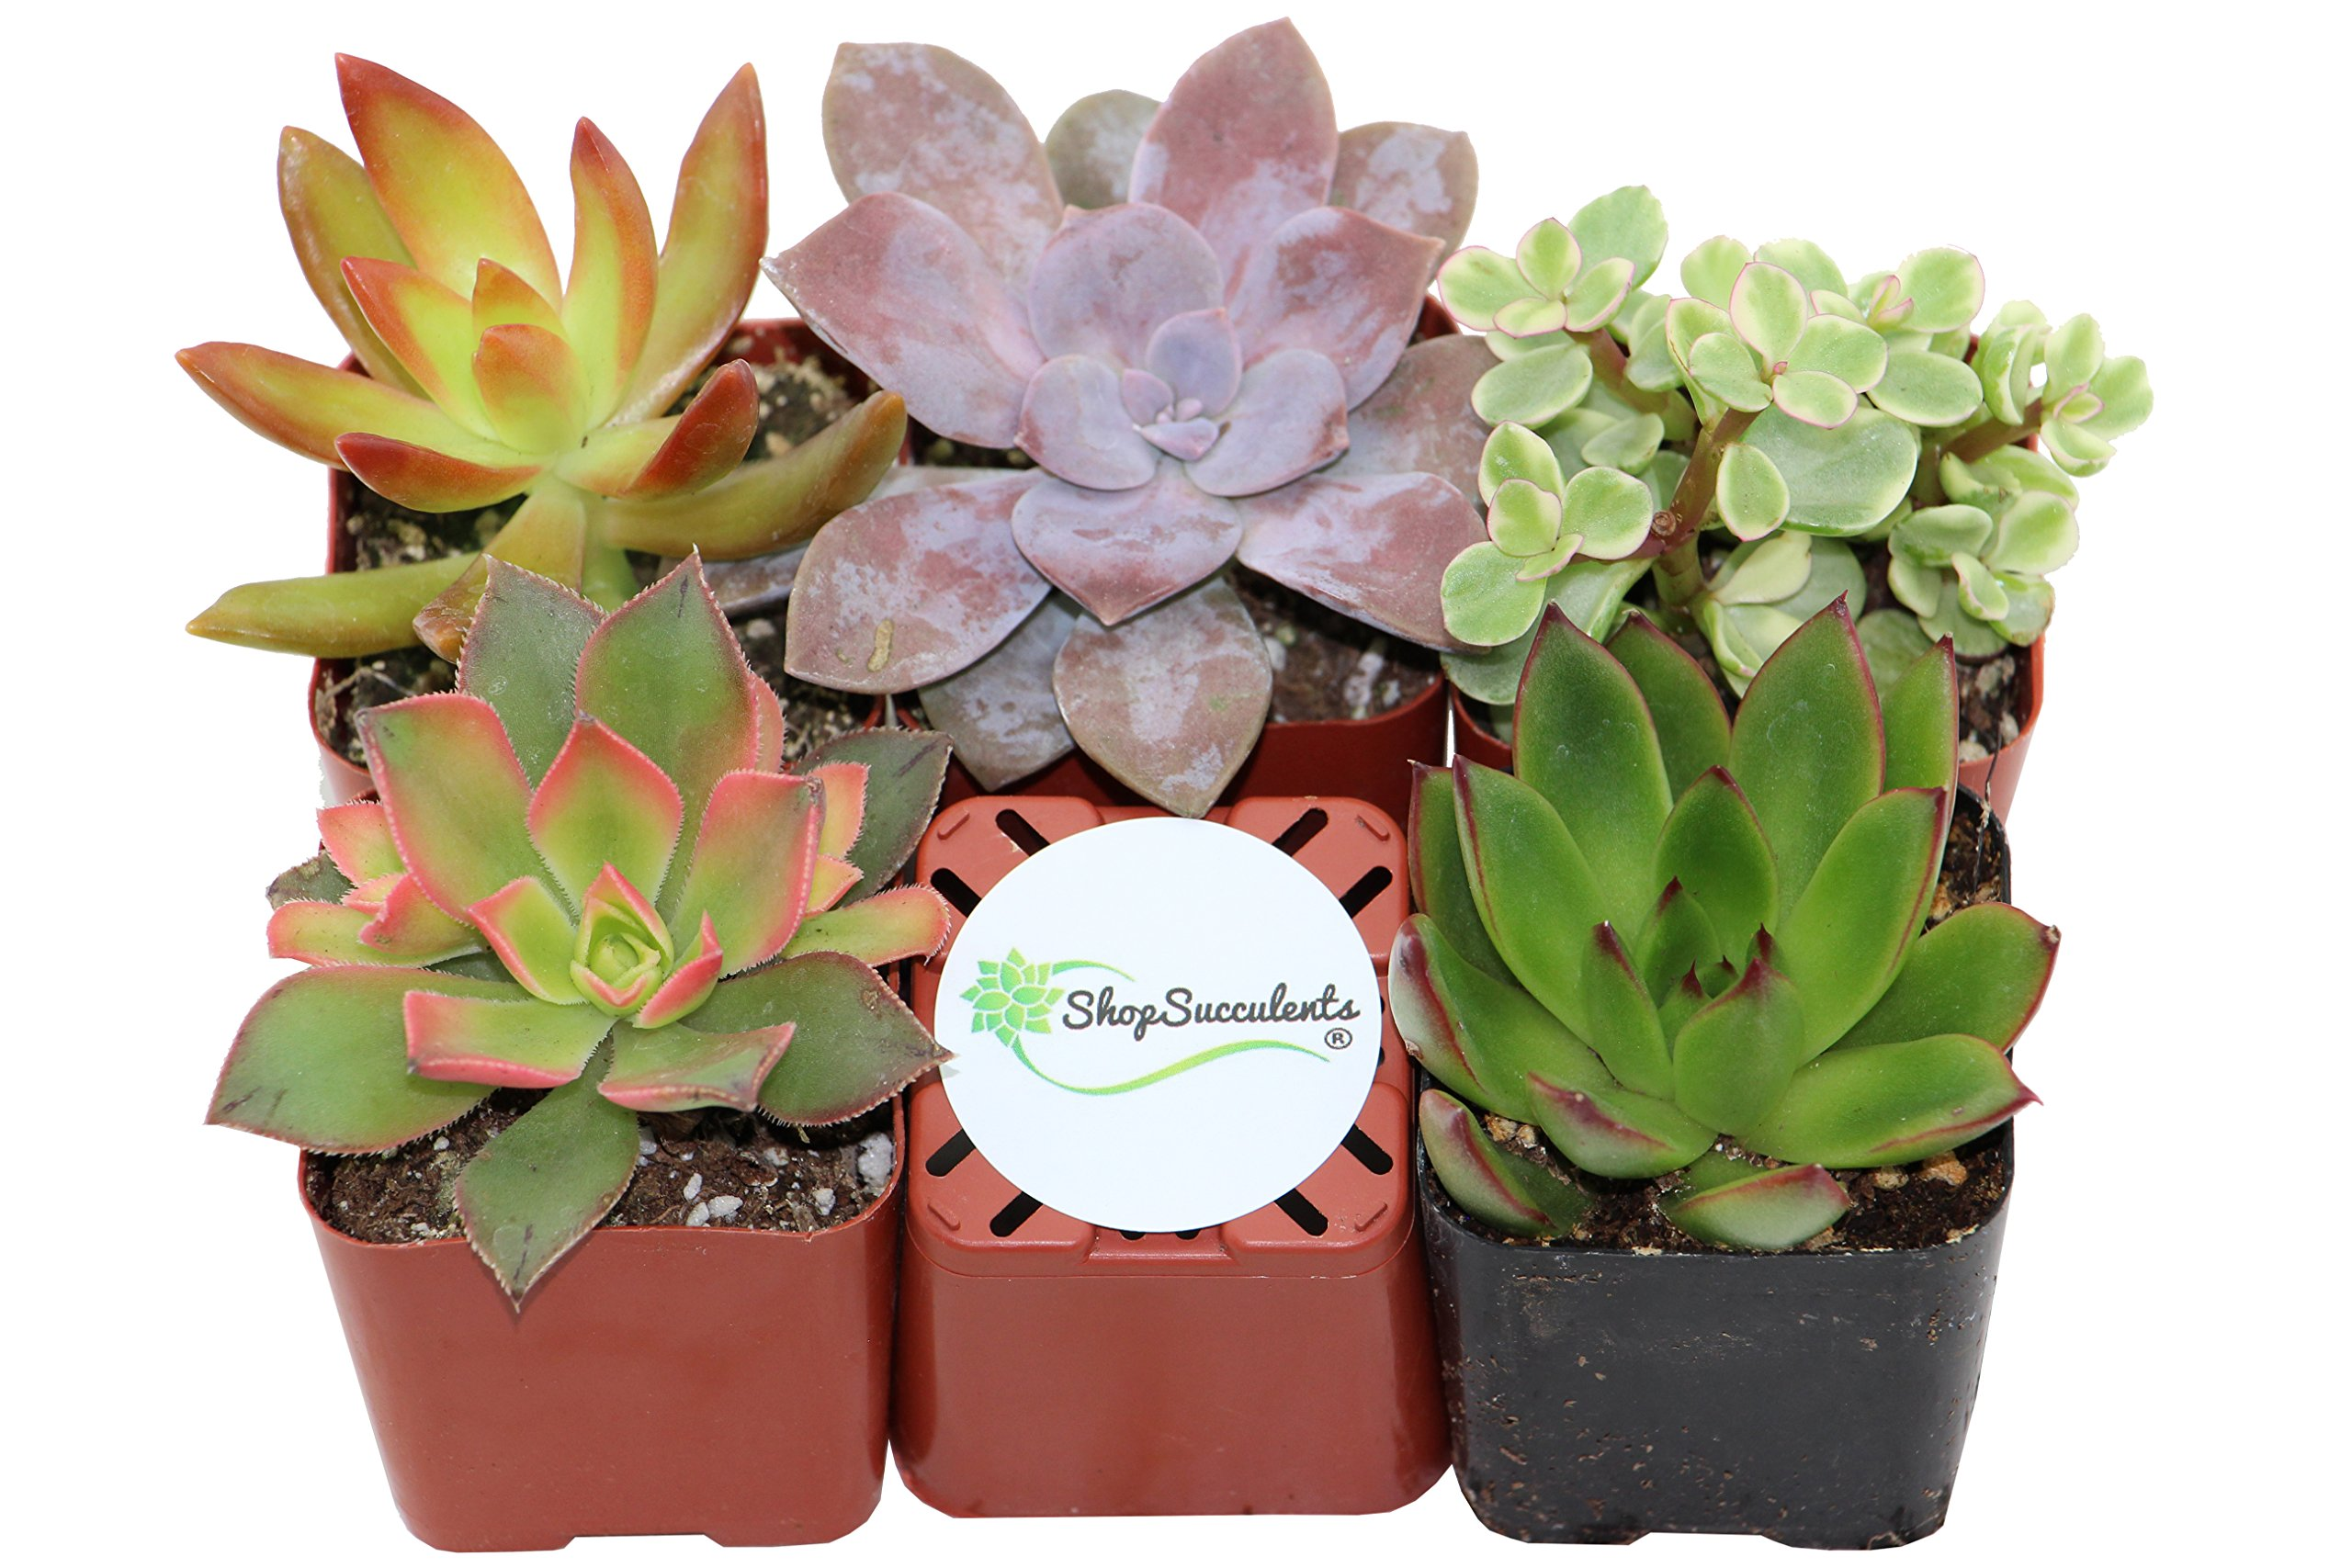 Shop Succulents Unique Succulent (Collection of 5)